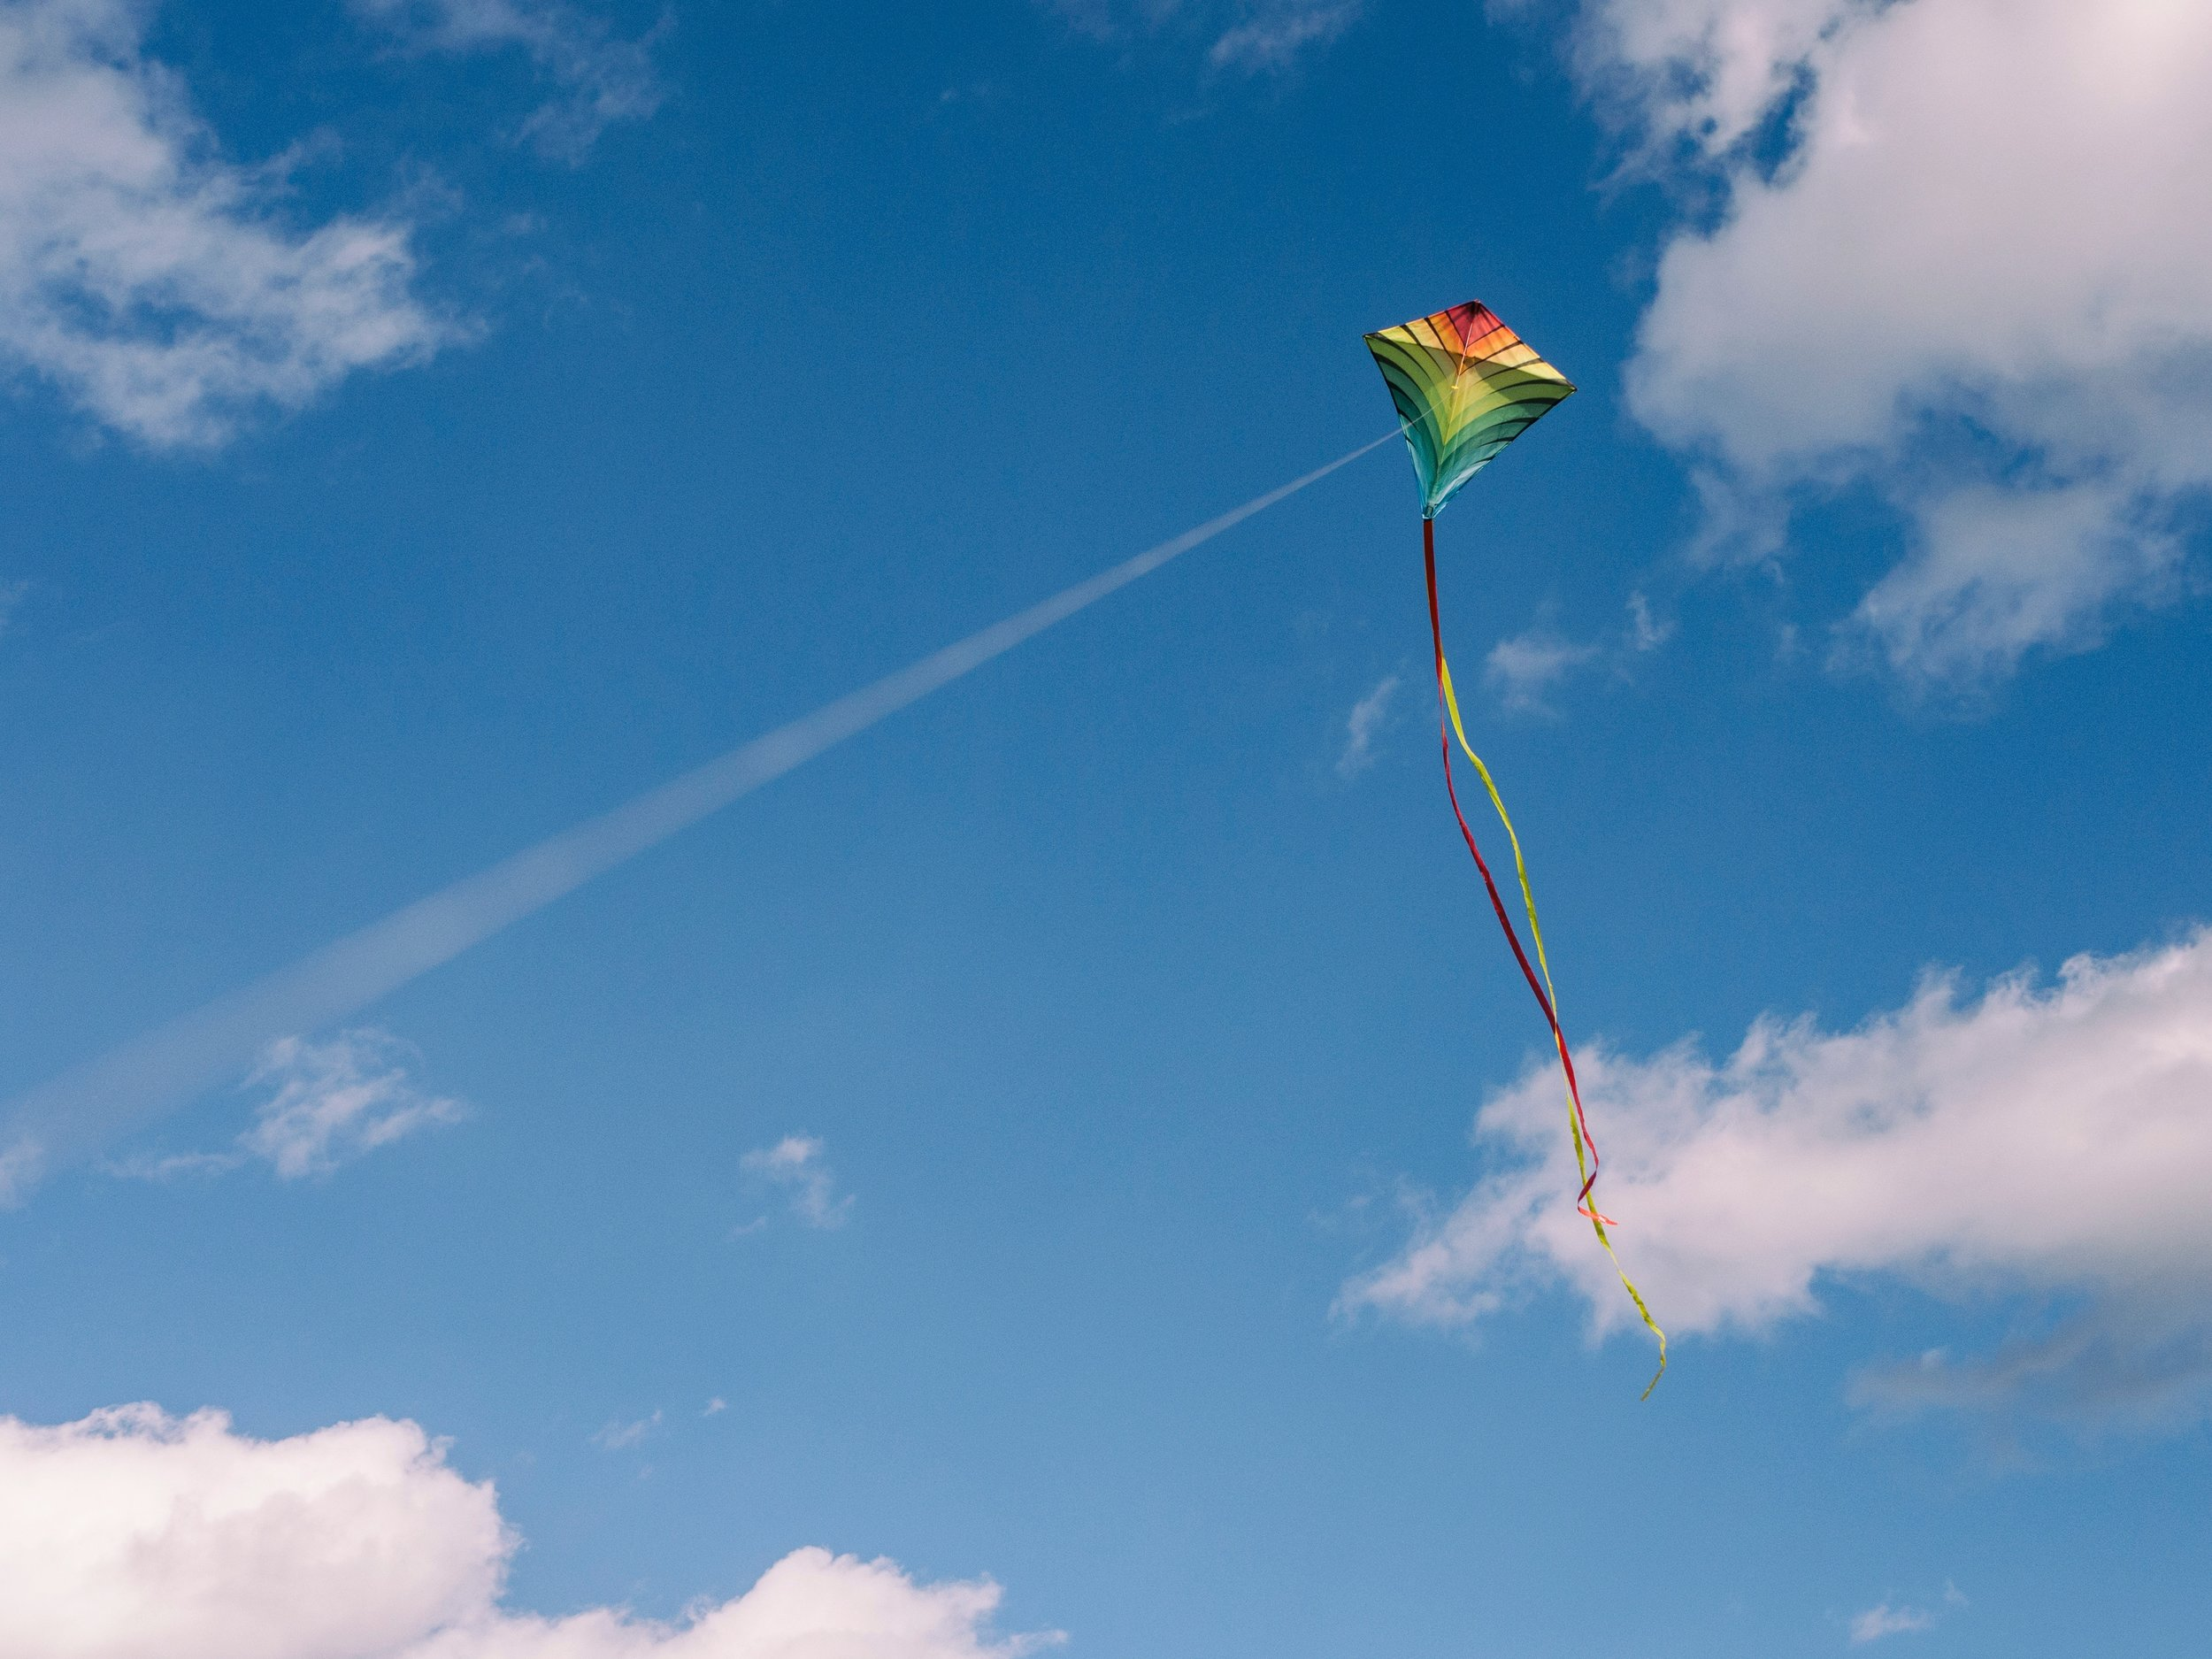 Kite flying in Sri Lanka